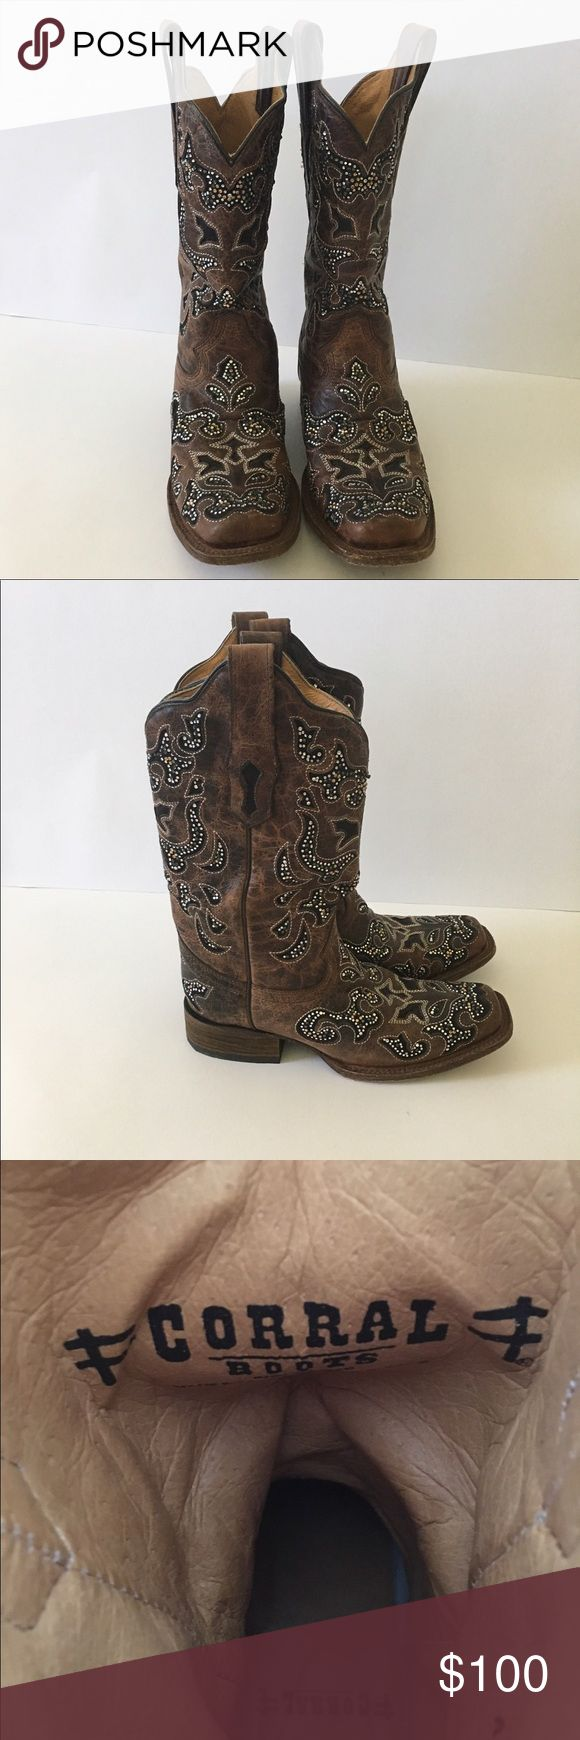 Women's Boots Genuine leather Corral Boots from Buckle, brown with black sued inlays trimmed in crystal, gold and black stones, so beautiful 😍 corral Shoes Heeled Boots